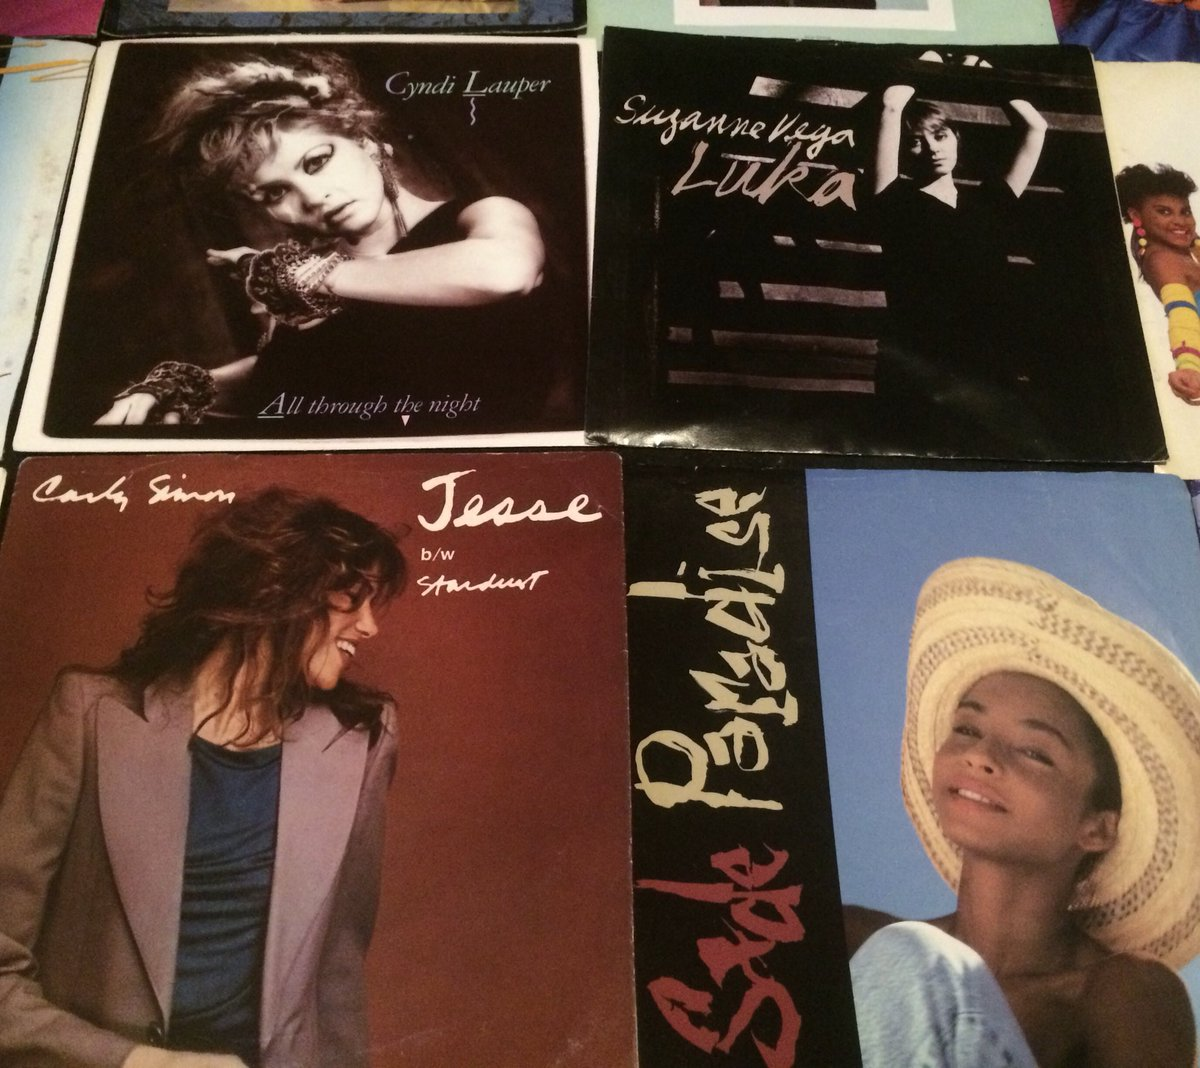 "80's RECORDS of the Day:    Suzanne Vega ""Luka"" (1987) Sade ""Paradise"" (1988) Carly Simon ""Jesse"" (1980) Cyndi Lauper All Through the Night"" (1984)  #CyndiLauper #Sade #CarlySimon #Suzannevega #Music #Records #Record #Vinyl #Pop #Rock #Dance #Freestyle #Hiphop #80s #80sThen80sNow<br>http://pic.twitter.com/sdOG0i9UMQ"